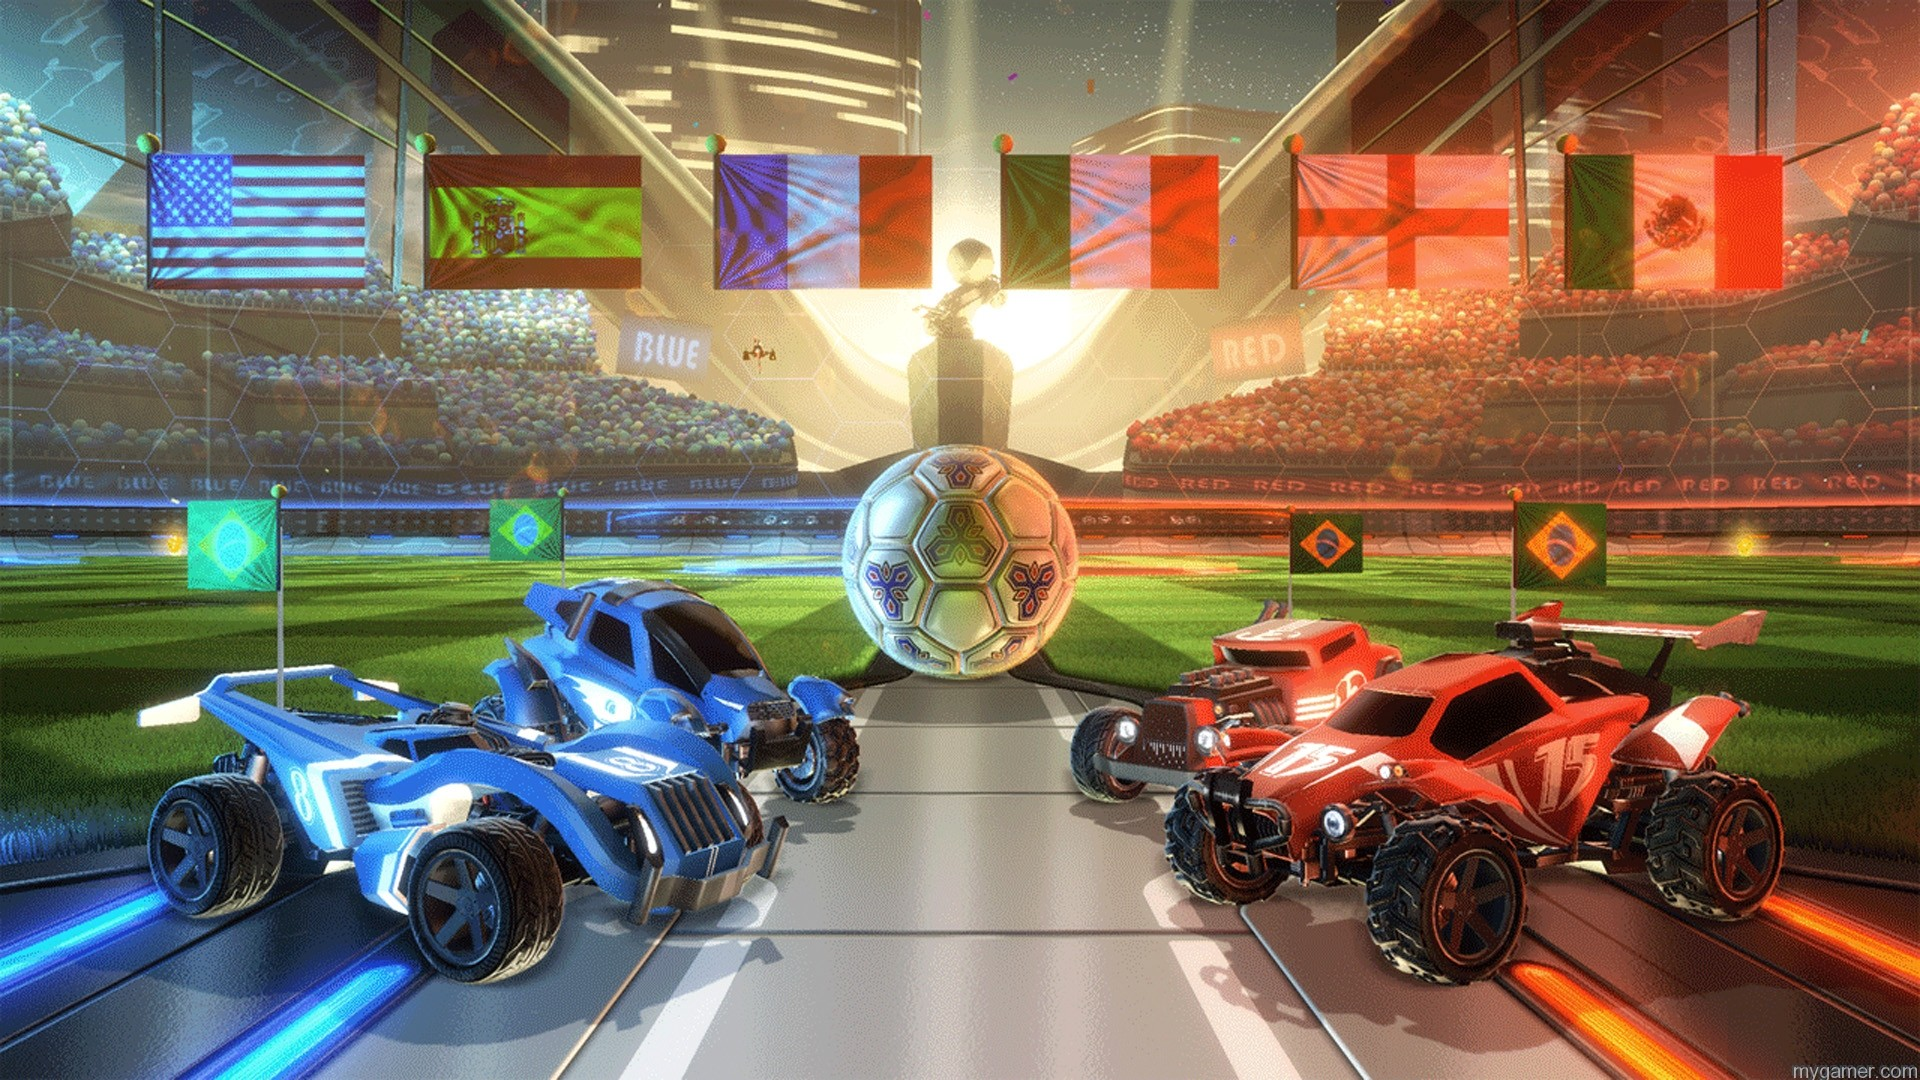 Rocket League imiage Rocket League Getting Physical Collector's Edition in Q3 2016 Rocket League Getting Physical Collector's Edition in Q3 2016 Rocket League imiage